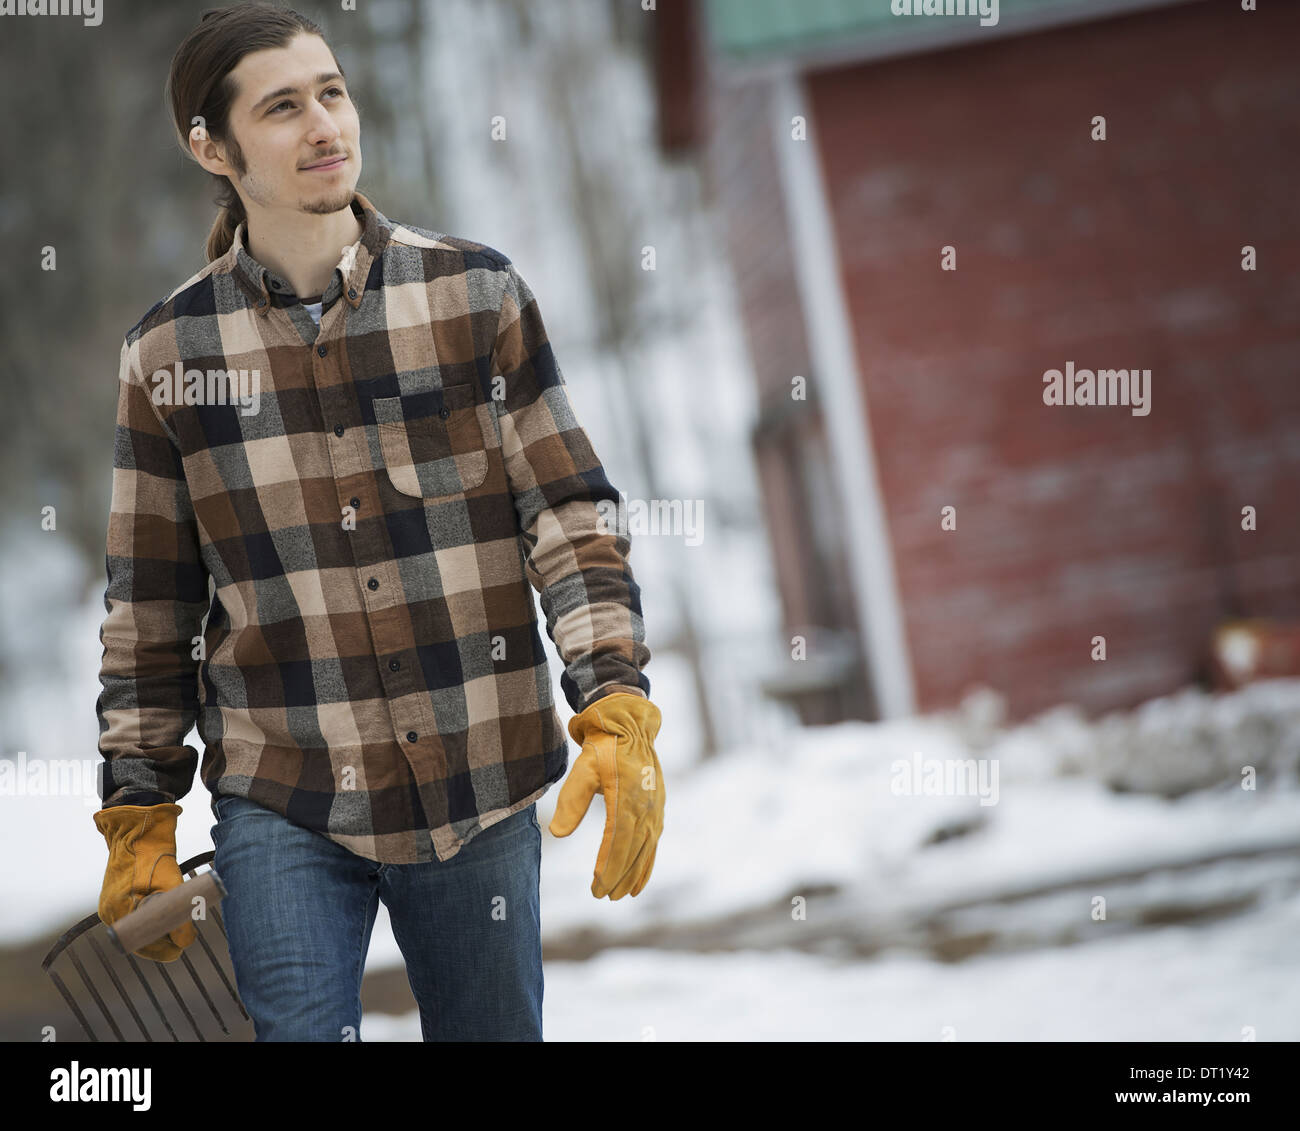 An organic farm in winter in New York State USA A man in a plaid shirt walking across snow-covered ground - Stock Image